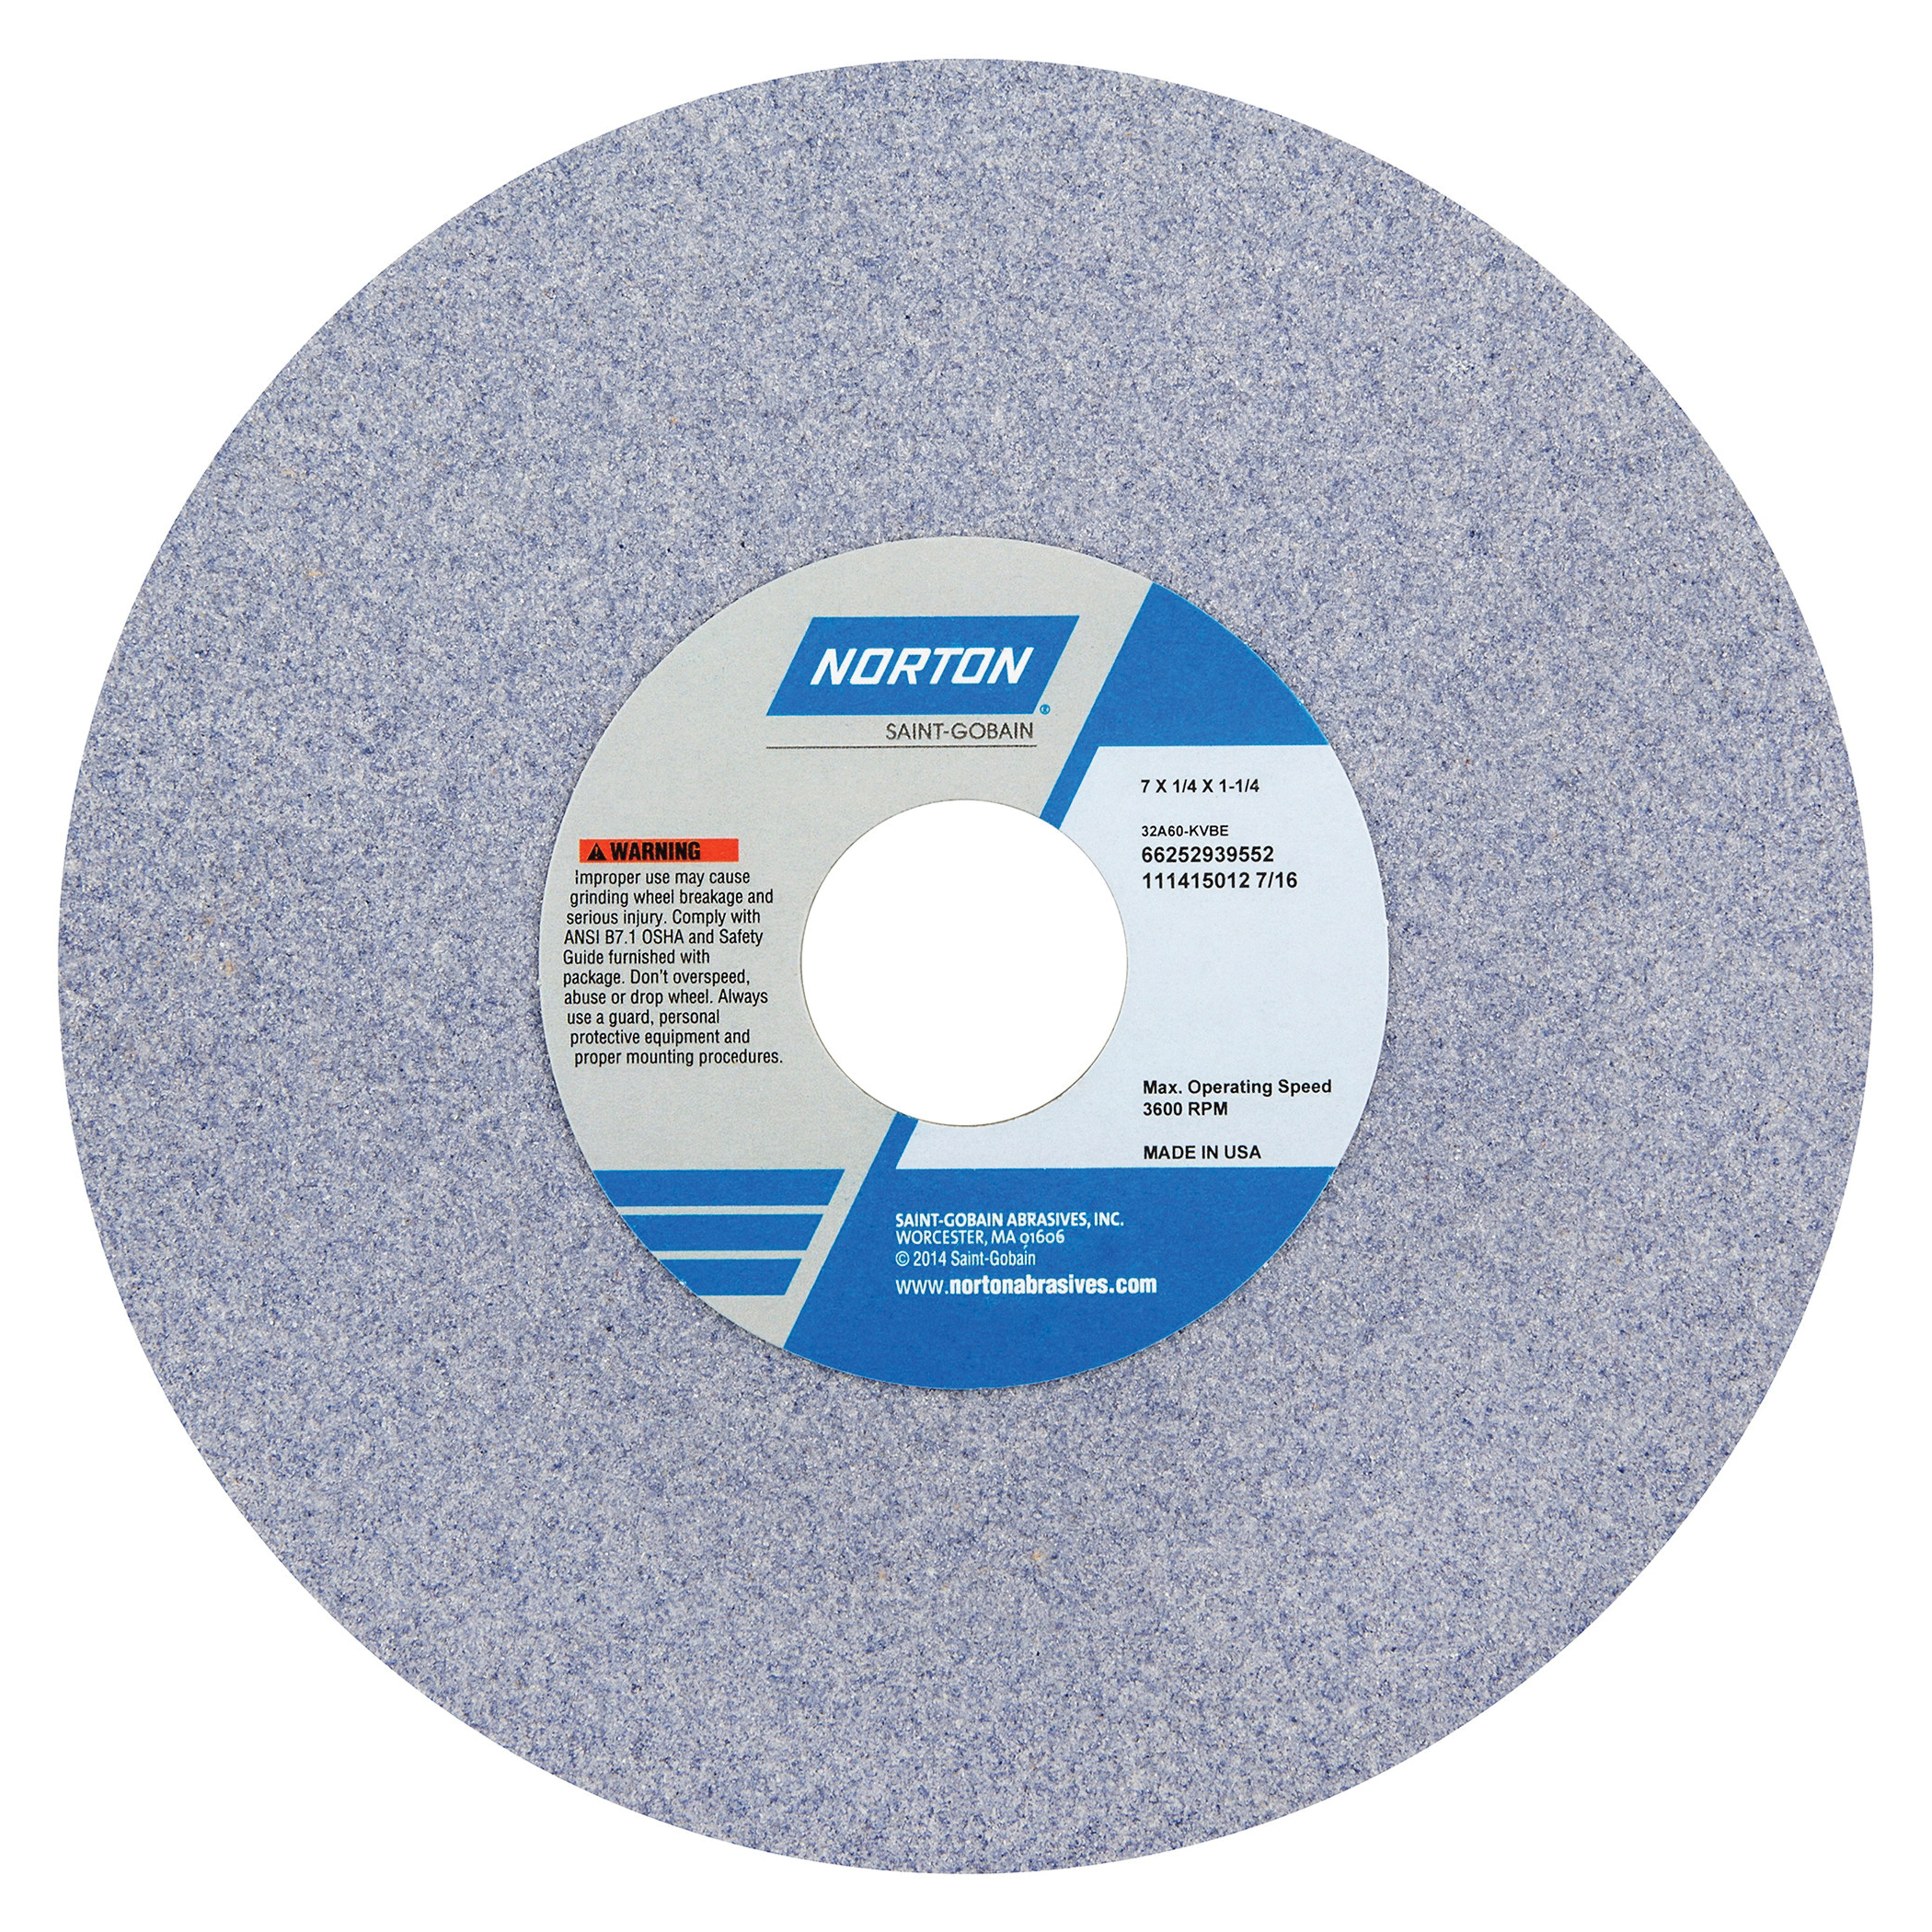 Norton® 66252939673 32A Straight Toolroom Wheel, 7 in Dia x 1/4 in THK, 1-1/4 in Center Hole, 100 Grit, Aluminum Oxide Abrasive